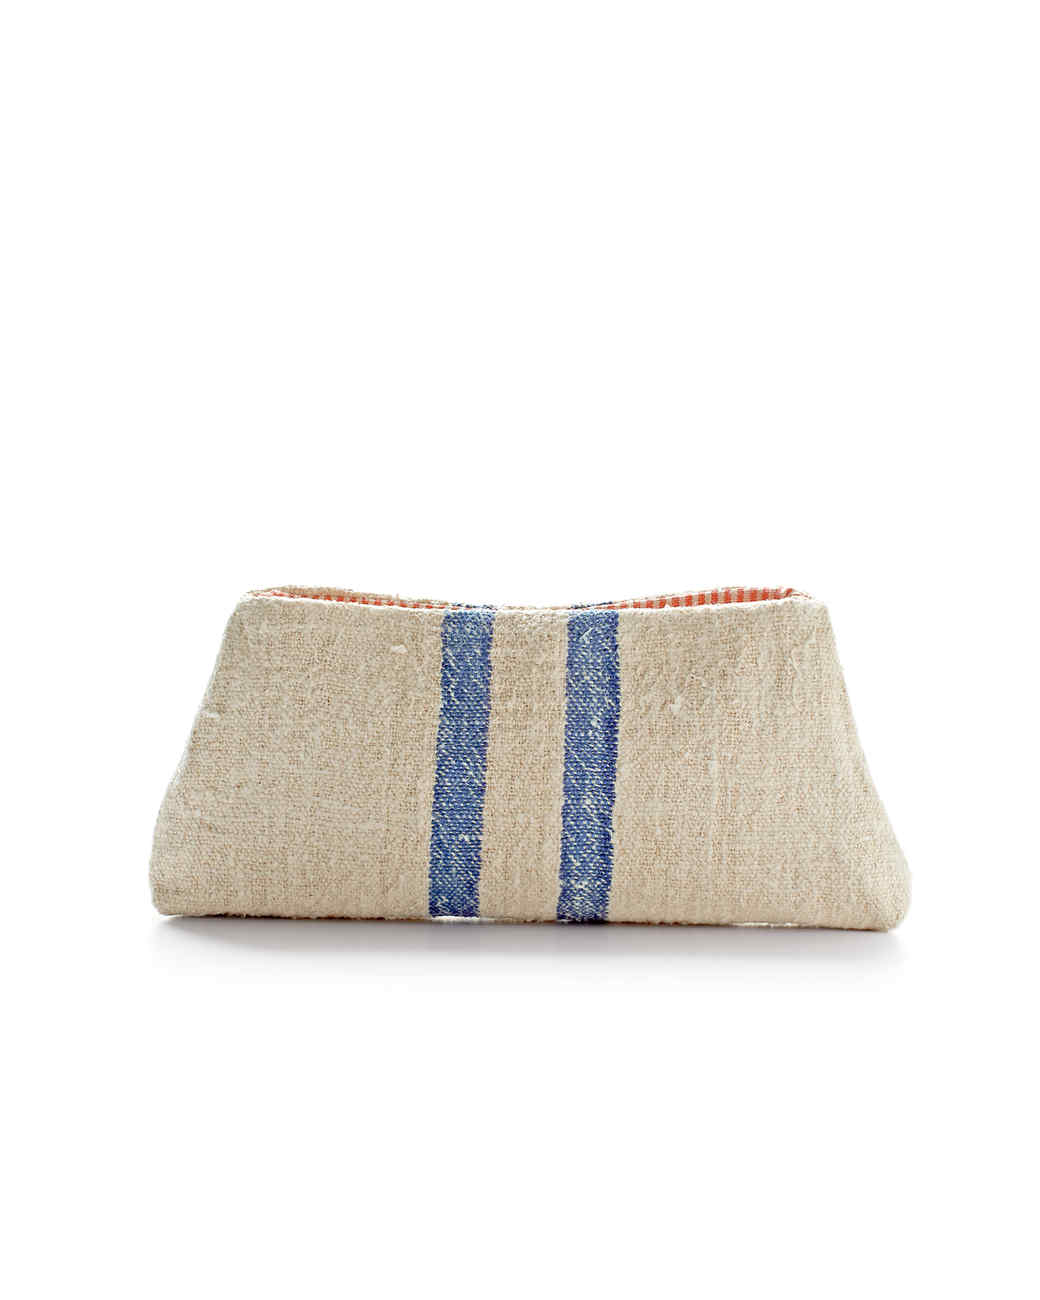 grain-sack-clutch-mld108095.jpg